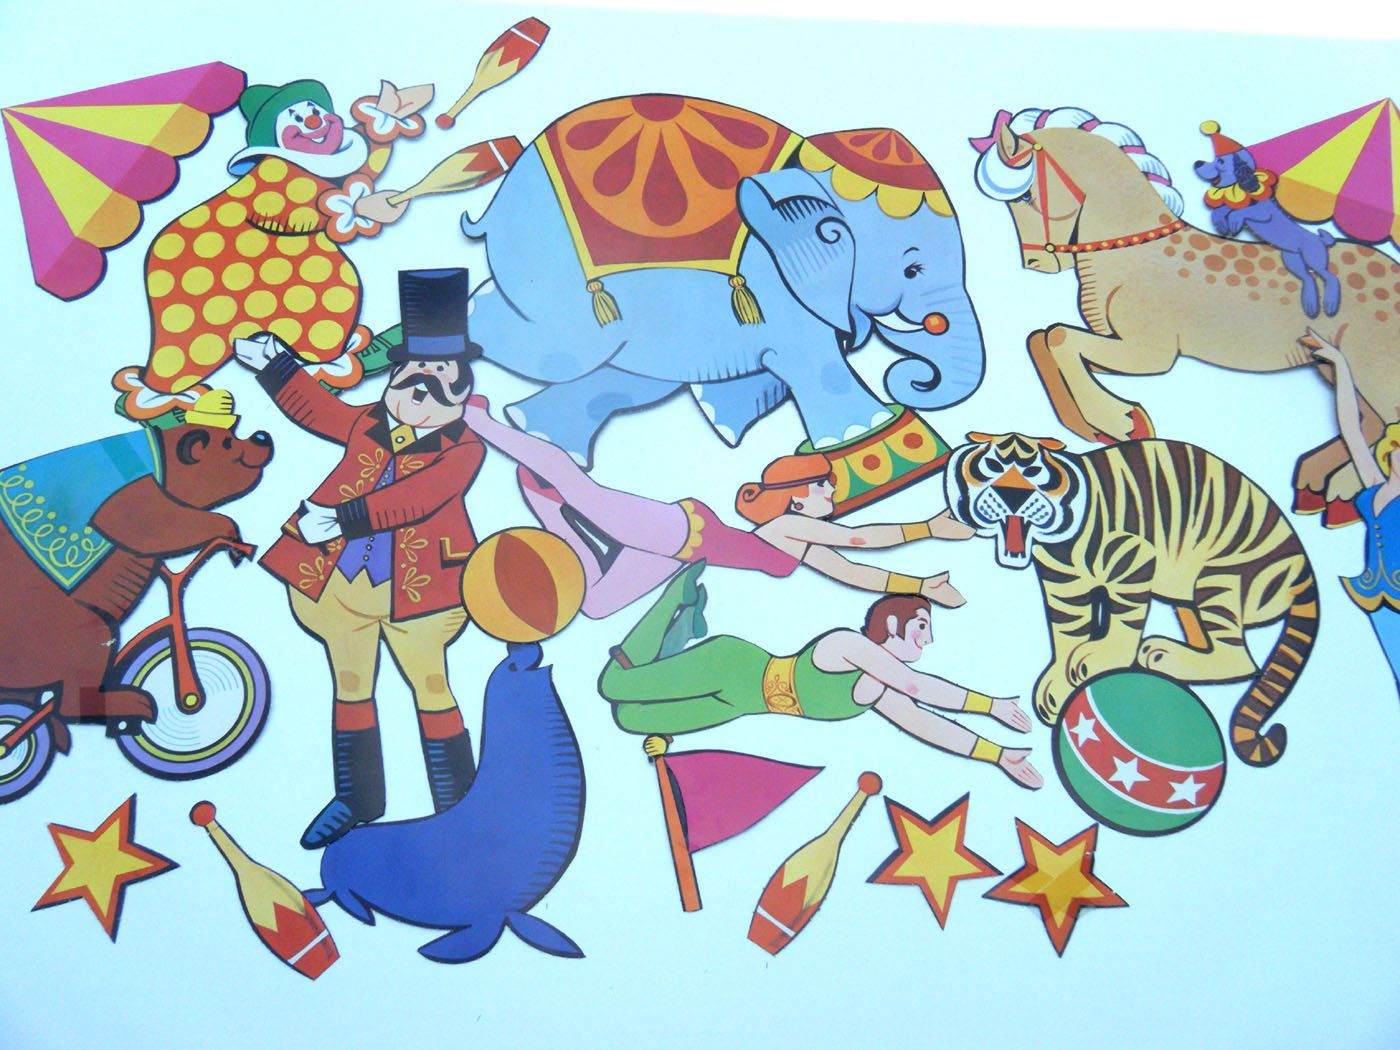 Vintage Lot of CIRCUS Cut Outs For Decorating Walls or Circus Party Decorations Elephant Tiger Bear Seal Horse Ringmaster and more. $16.00, via Etsy.